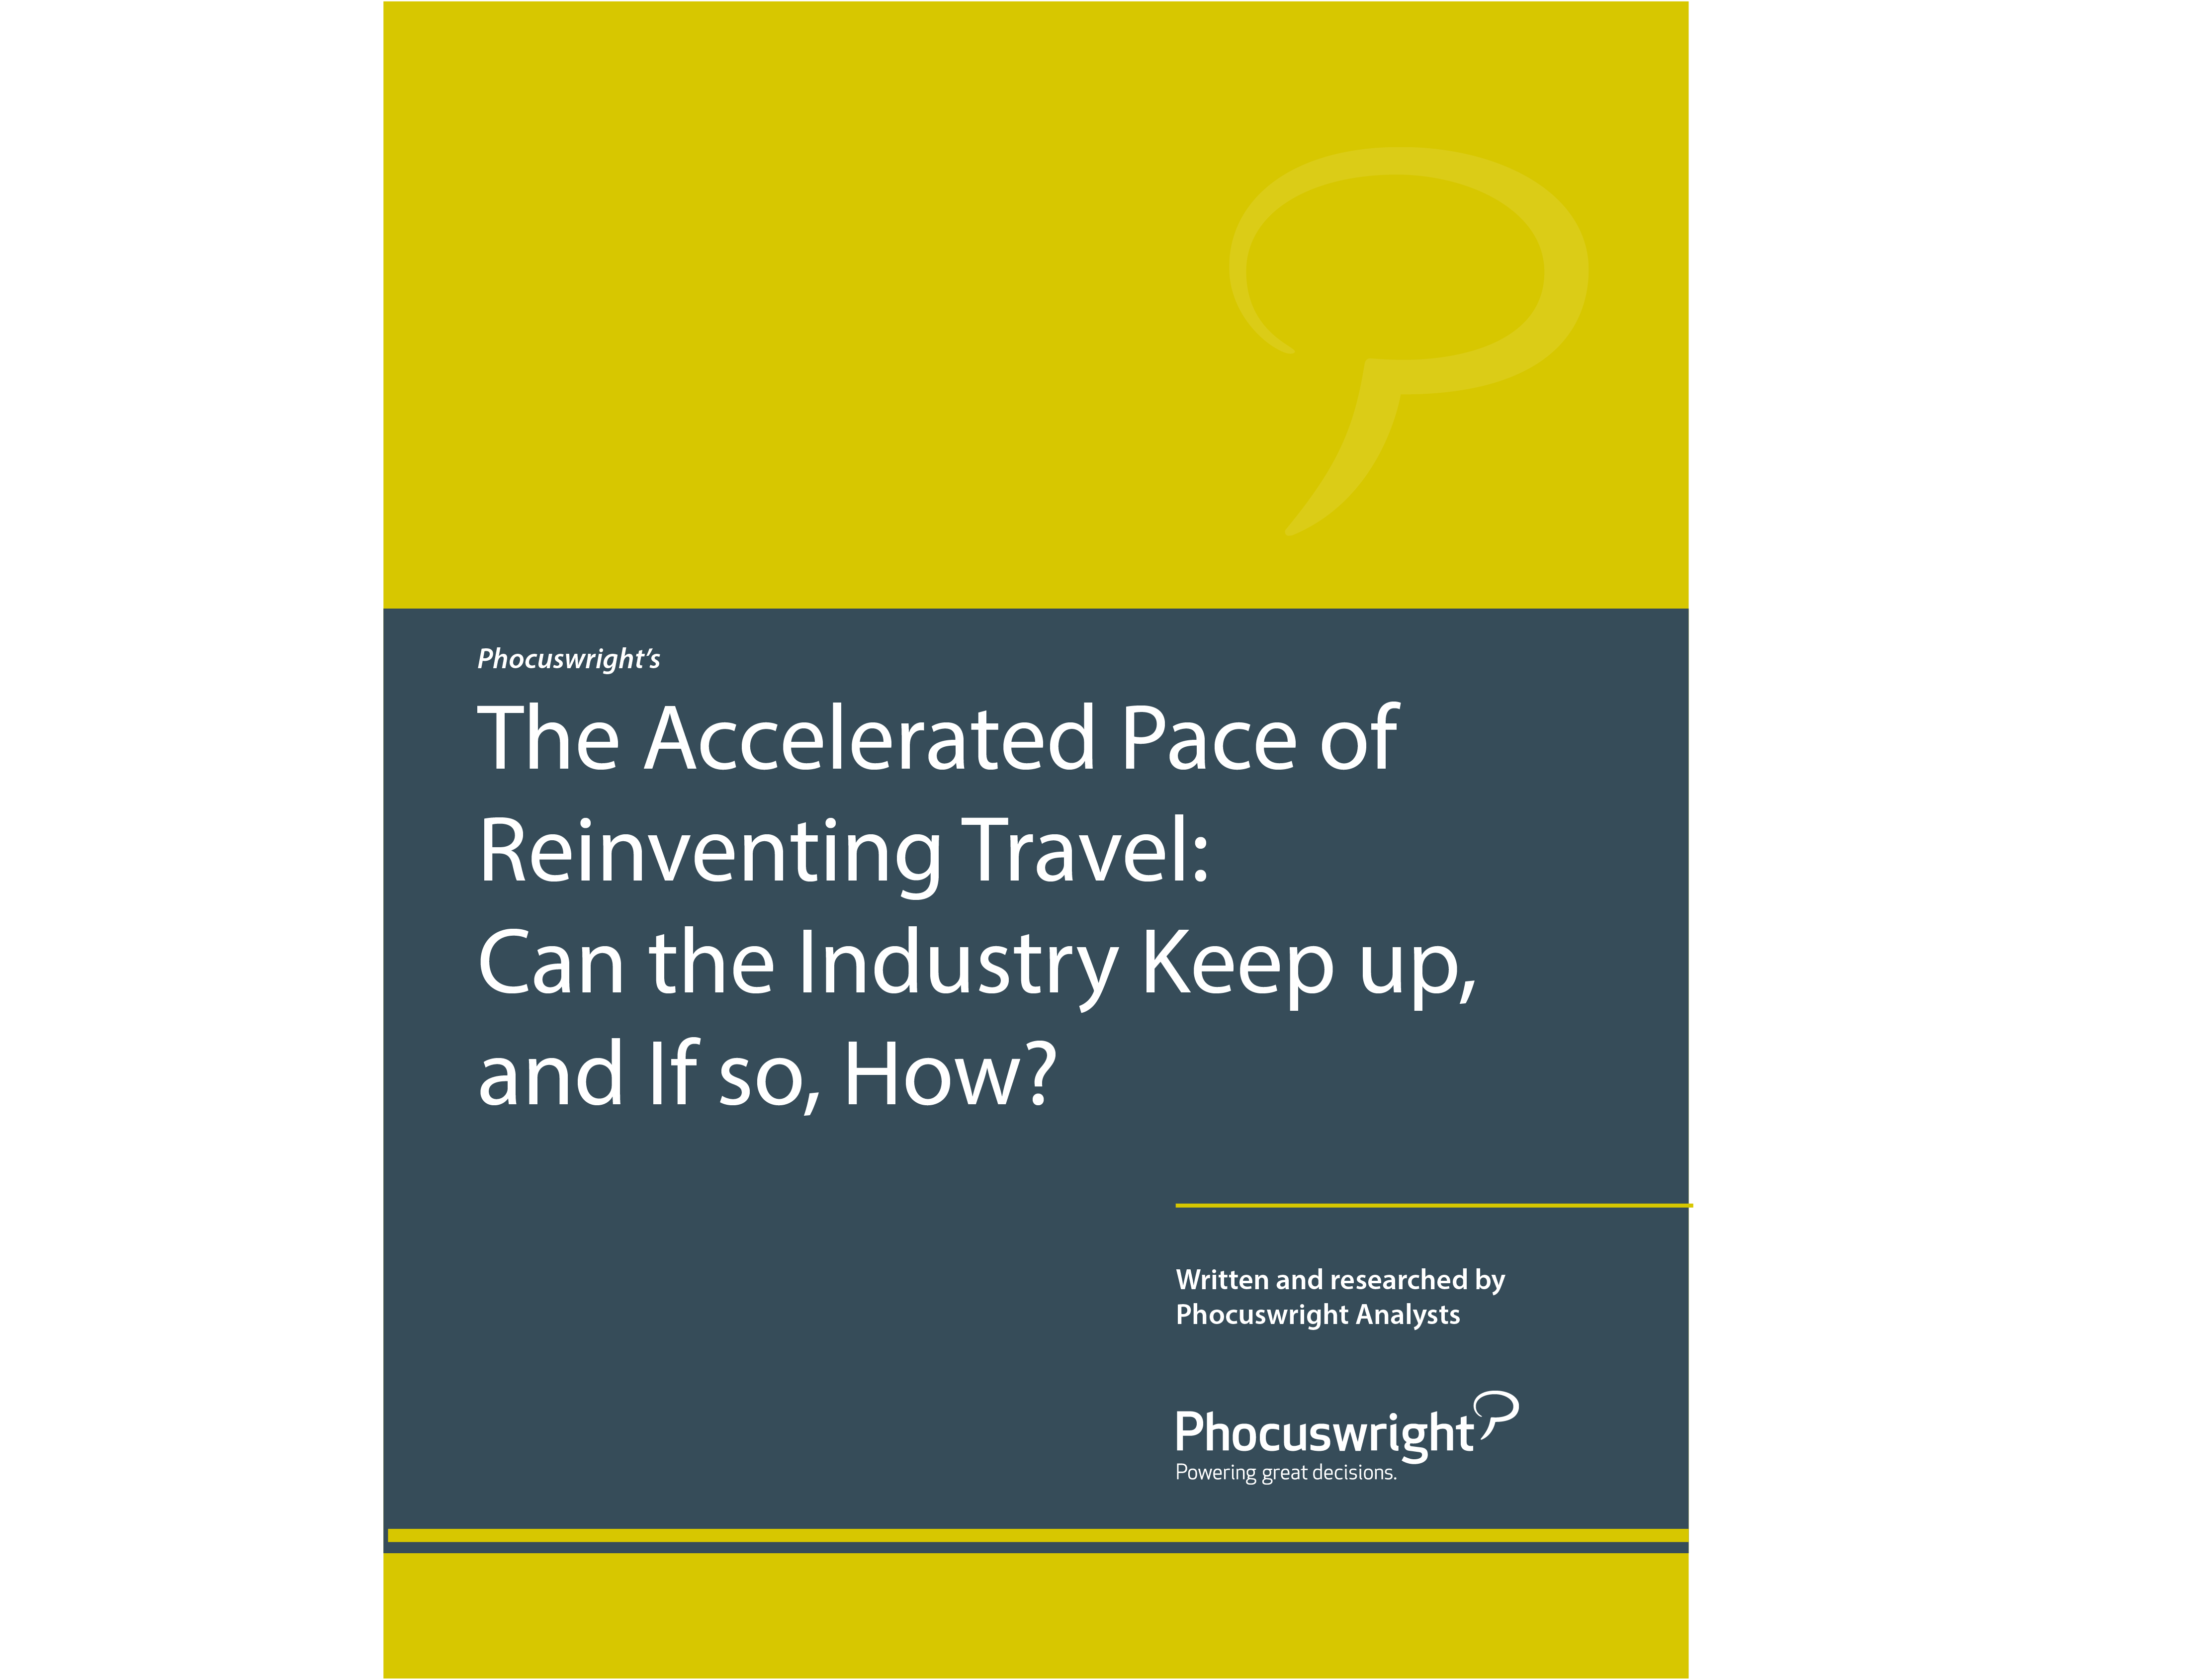 The Accelerated Pace of Reinventing Travel: Can the Industry Keep up, and If so, How?